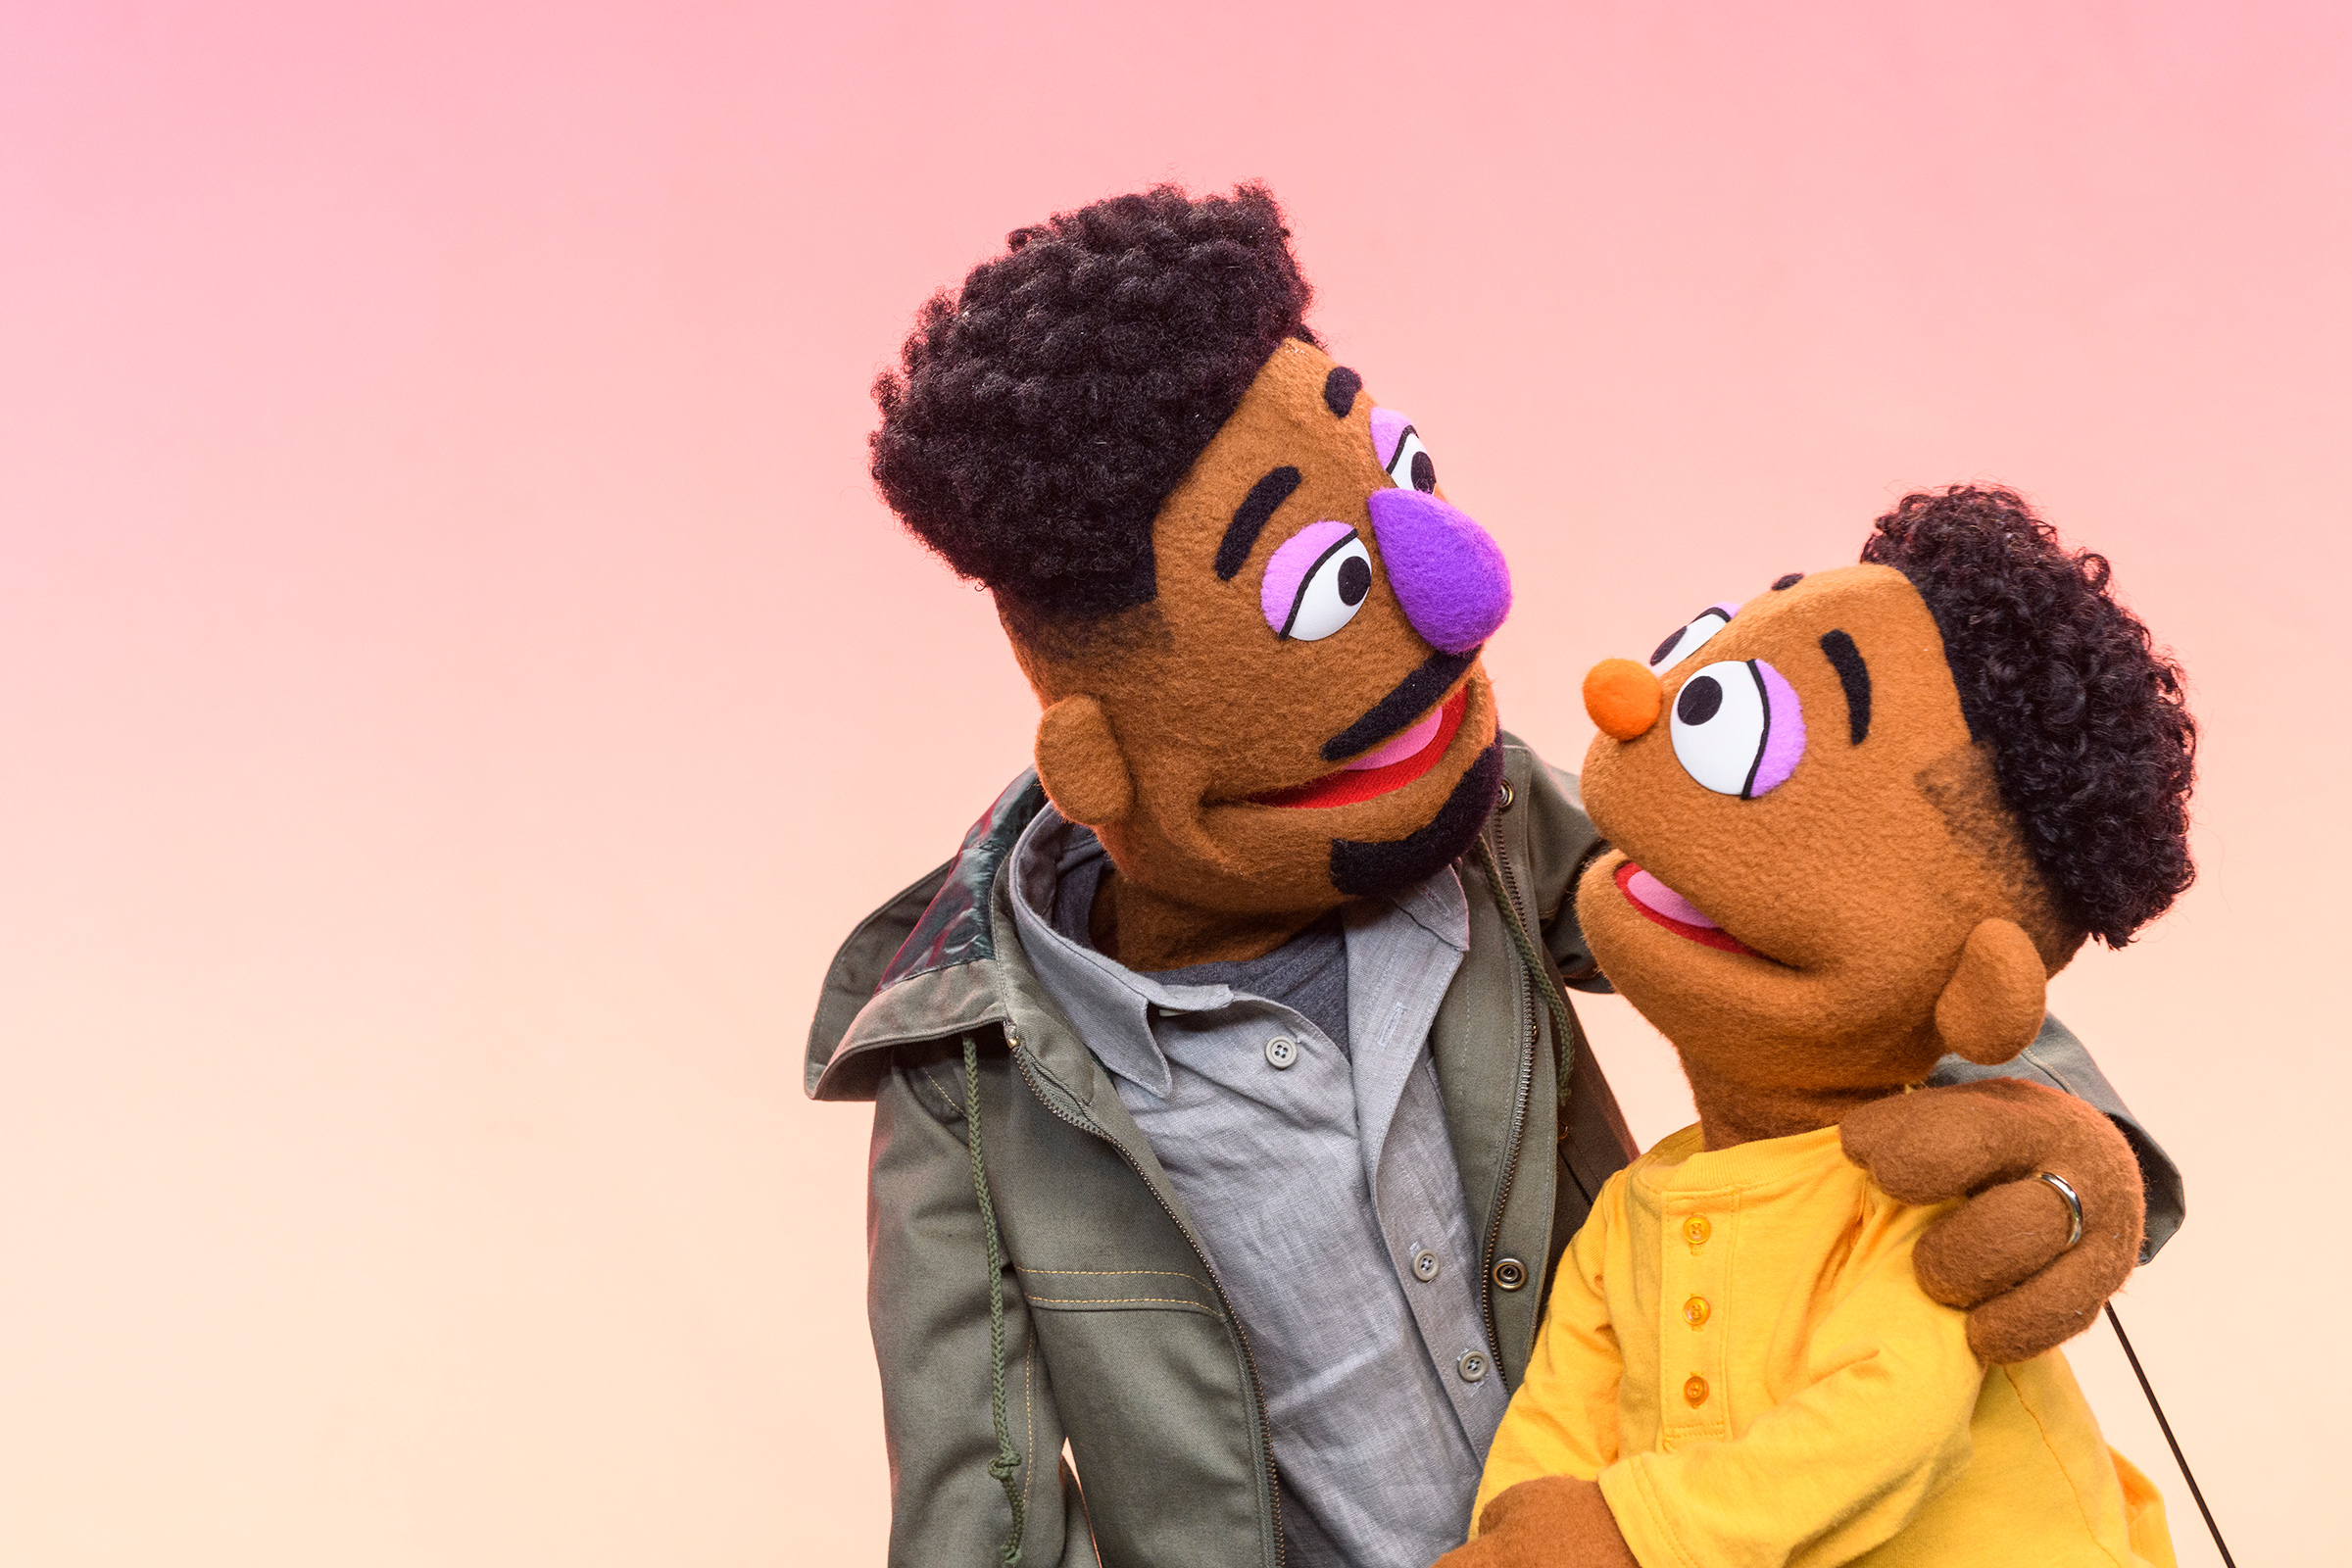 Elijah Walker, 35, a new Black Muppet who, along with his son Wesley, 5, will be introduced on March 23 by Sesame Workshop, the nonprofit behind Sesame  Street